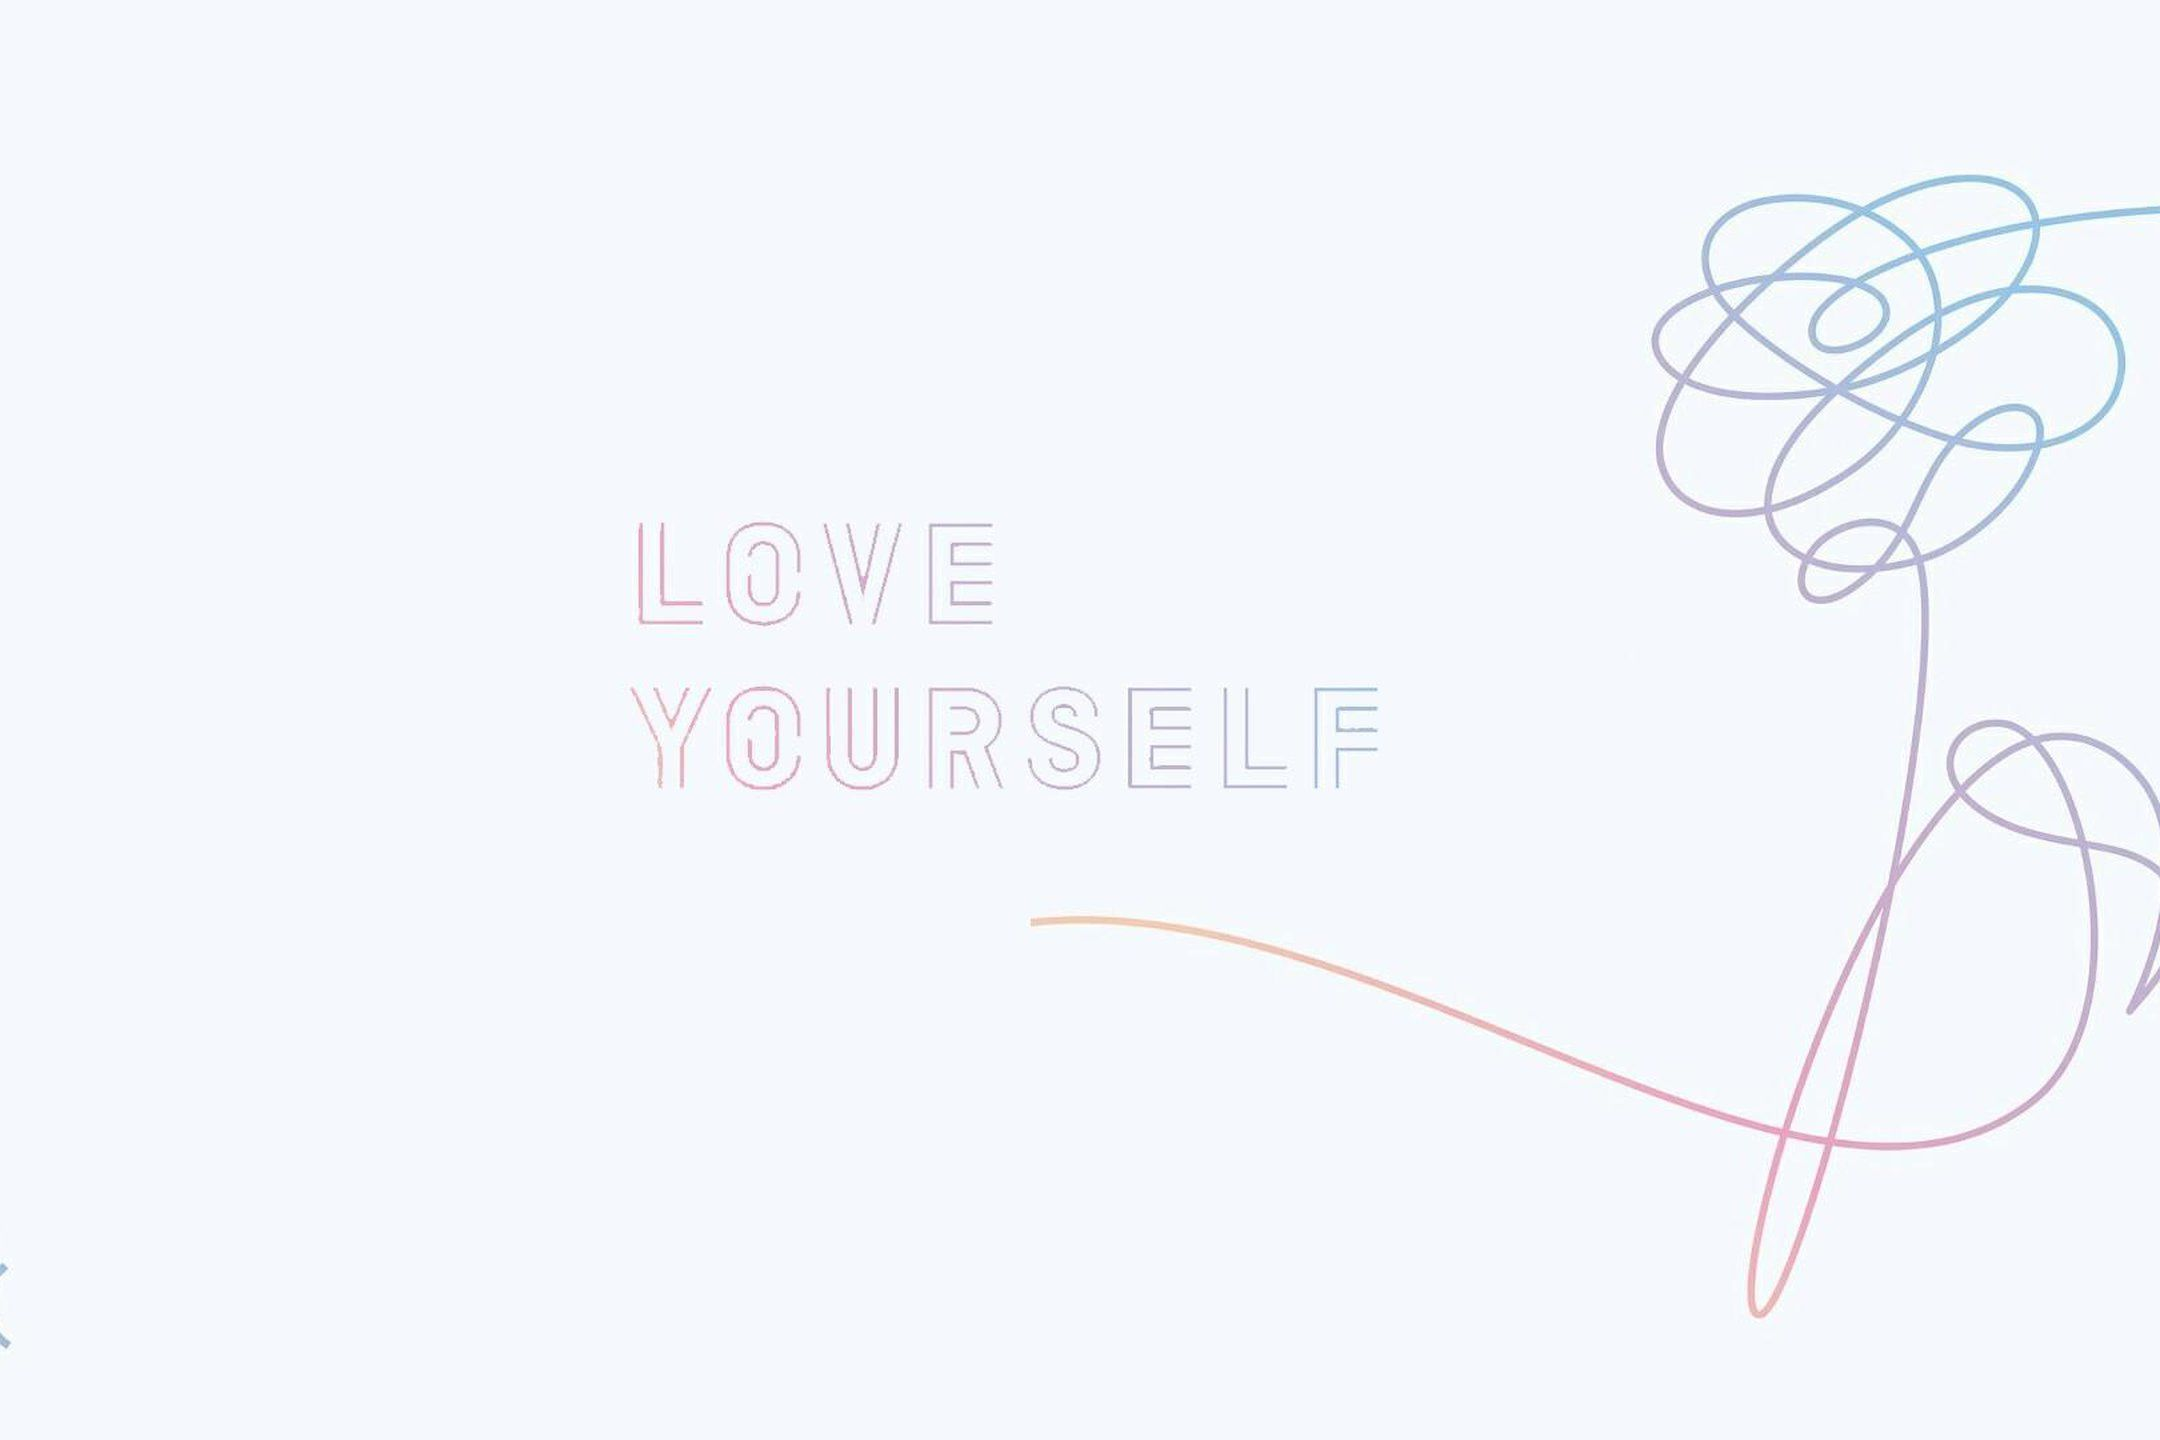 Love Yourself Bts Desktop Wallpapers Top Free Love Yourself Bts Desktop Backgrounds Wa Bts Love Yourself Lockscreen Iphone Quotes Tumblr Backgrounds Quotes